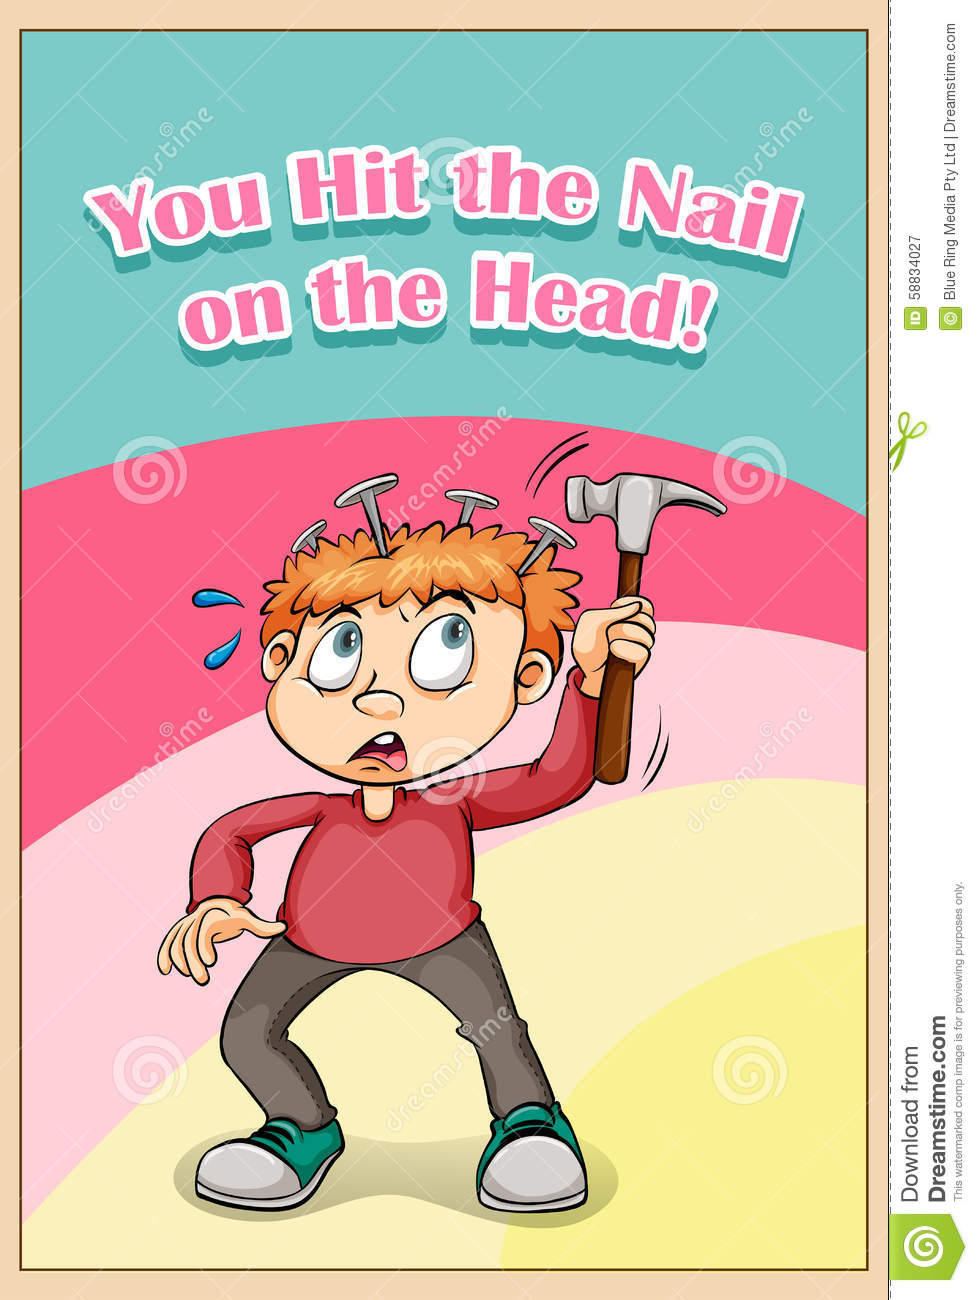 You Hit The Nail On The Head Stock Vector Illustration Of Hurt Saying 58834027